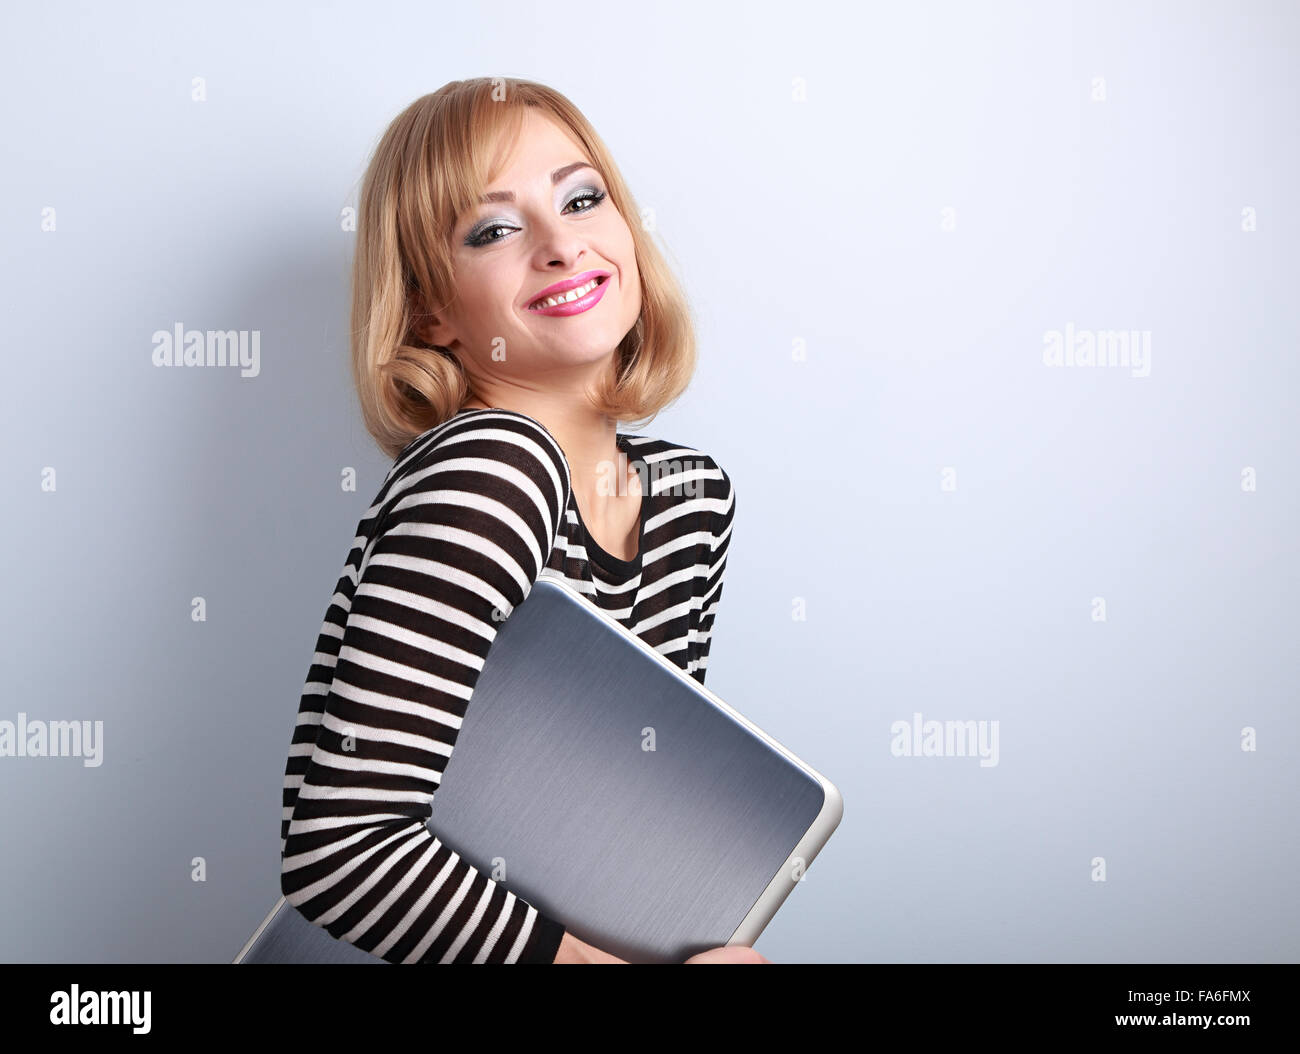 Happy smiling casual woman holding in hand laptop on blue background with empty copy space - Stock Image